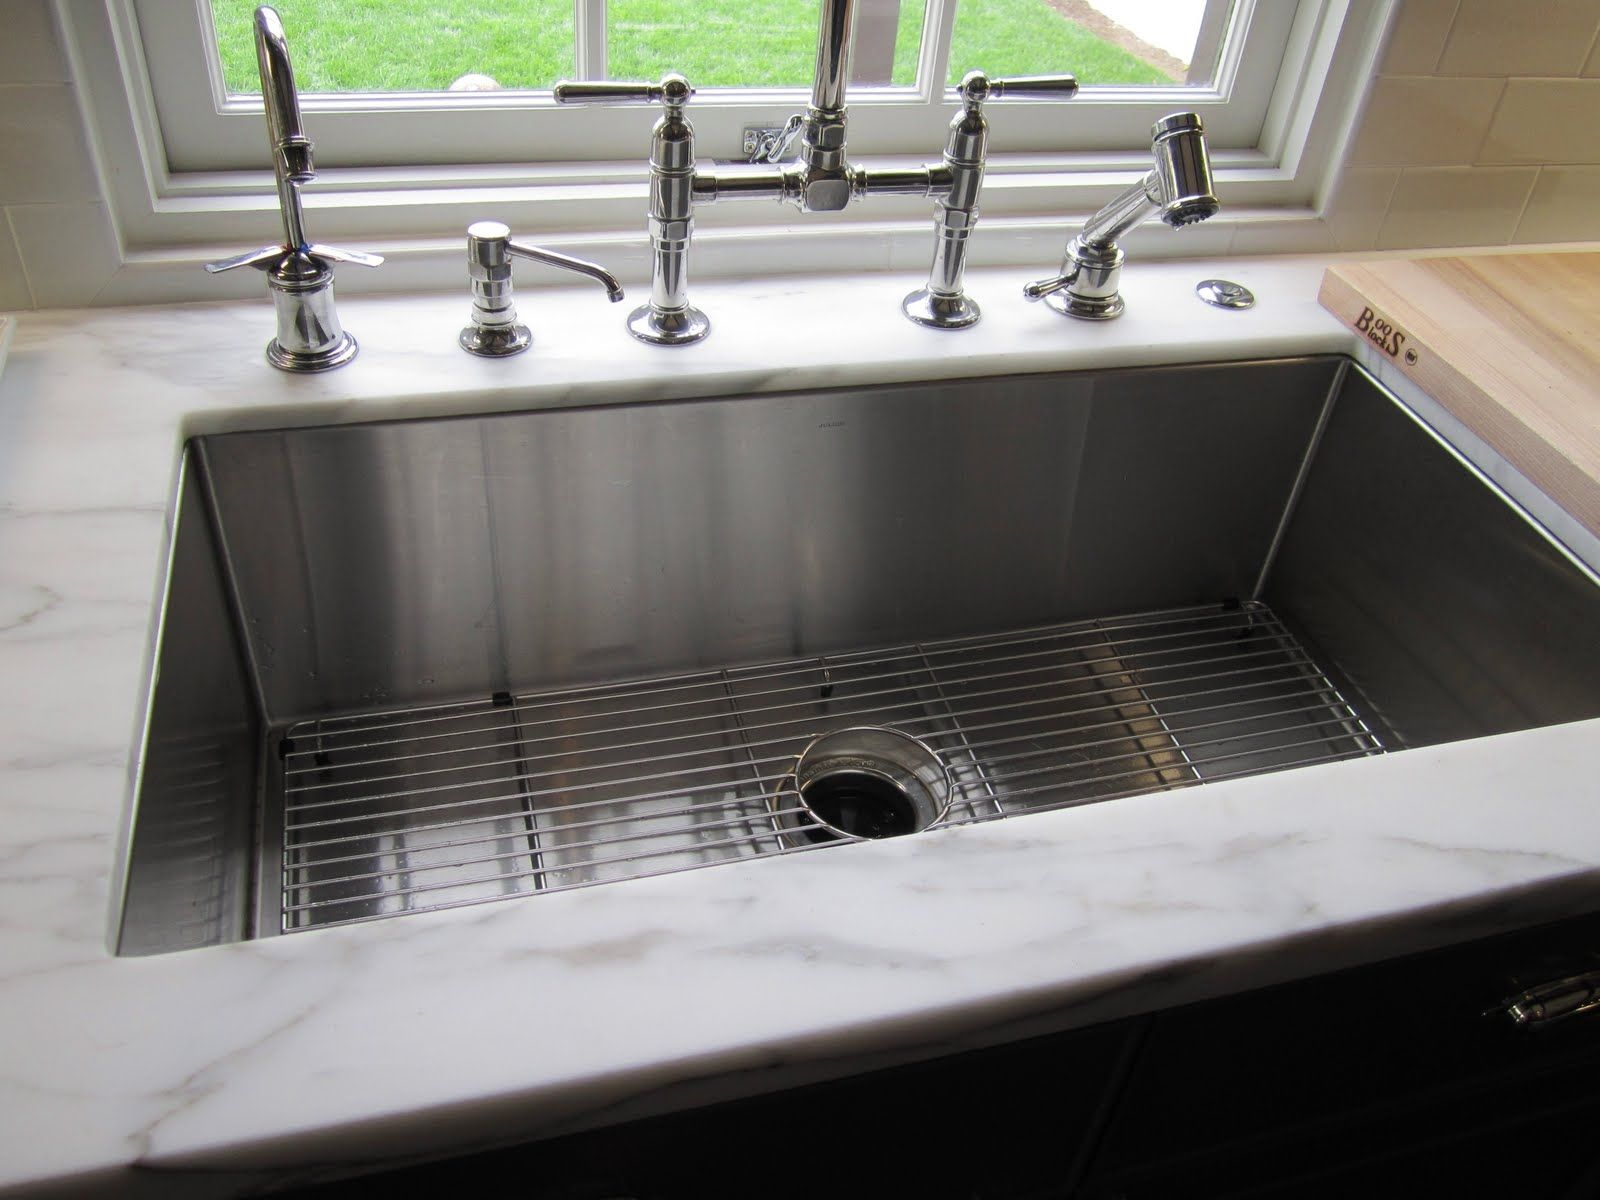 Image Result For Extra Large Stainless Steel Undermount Sink With